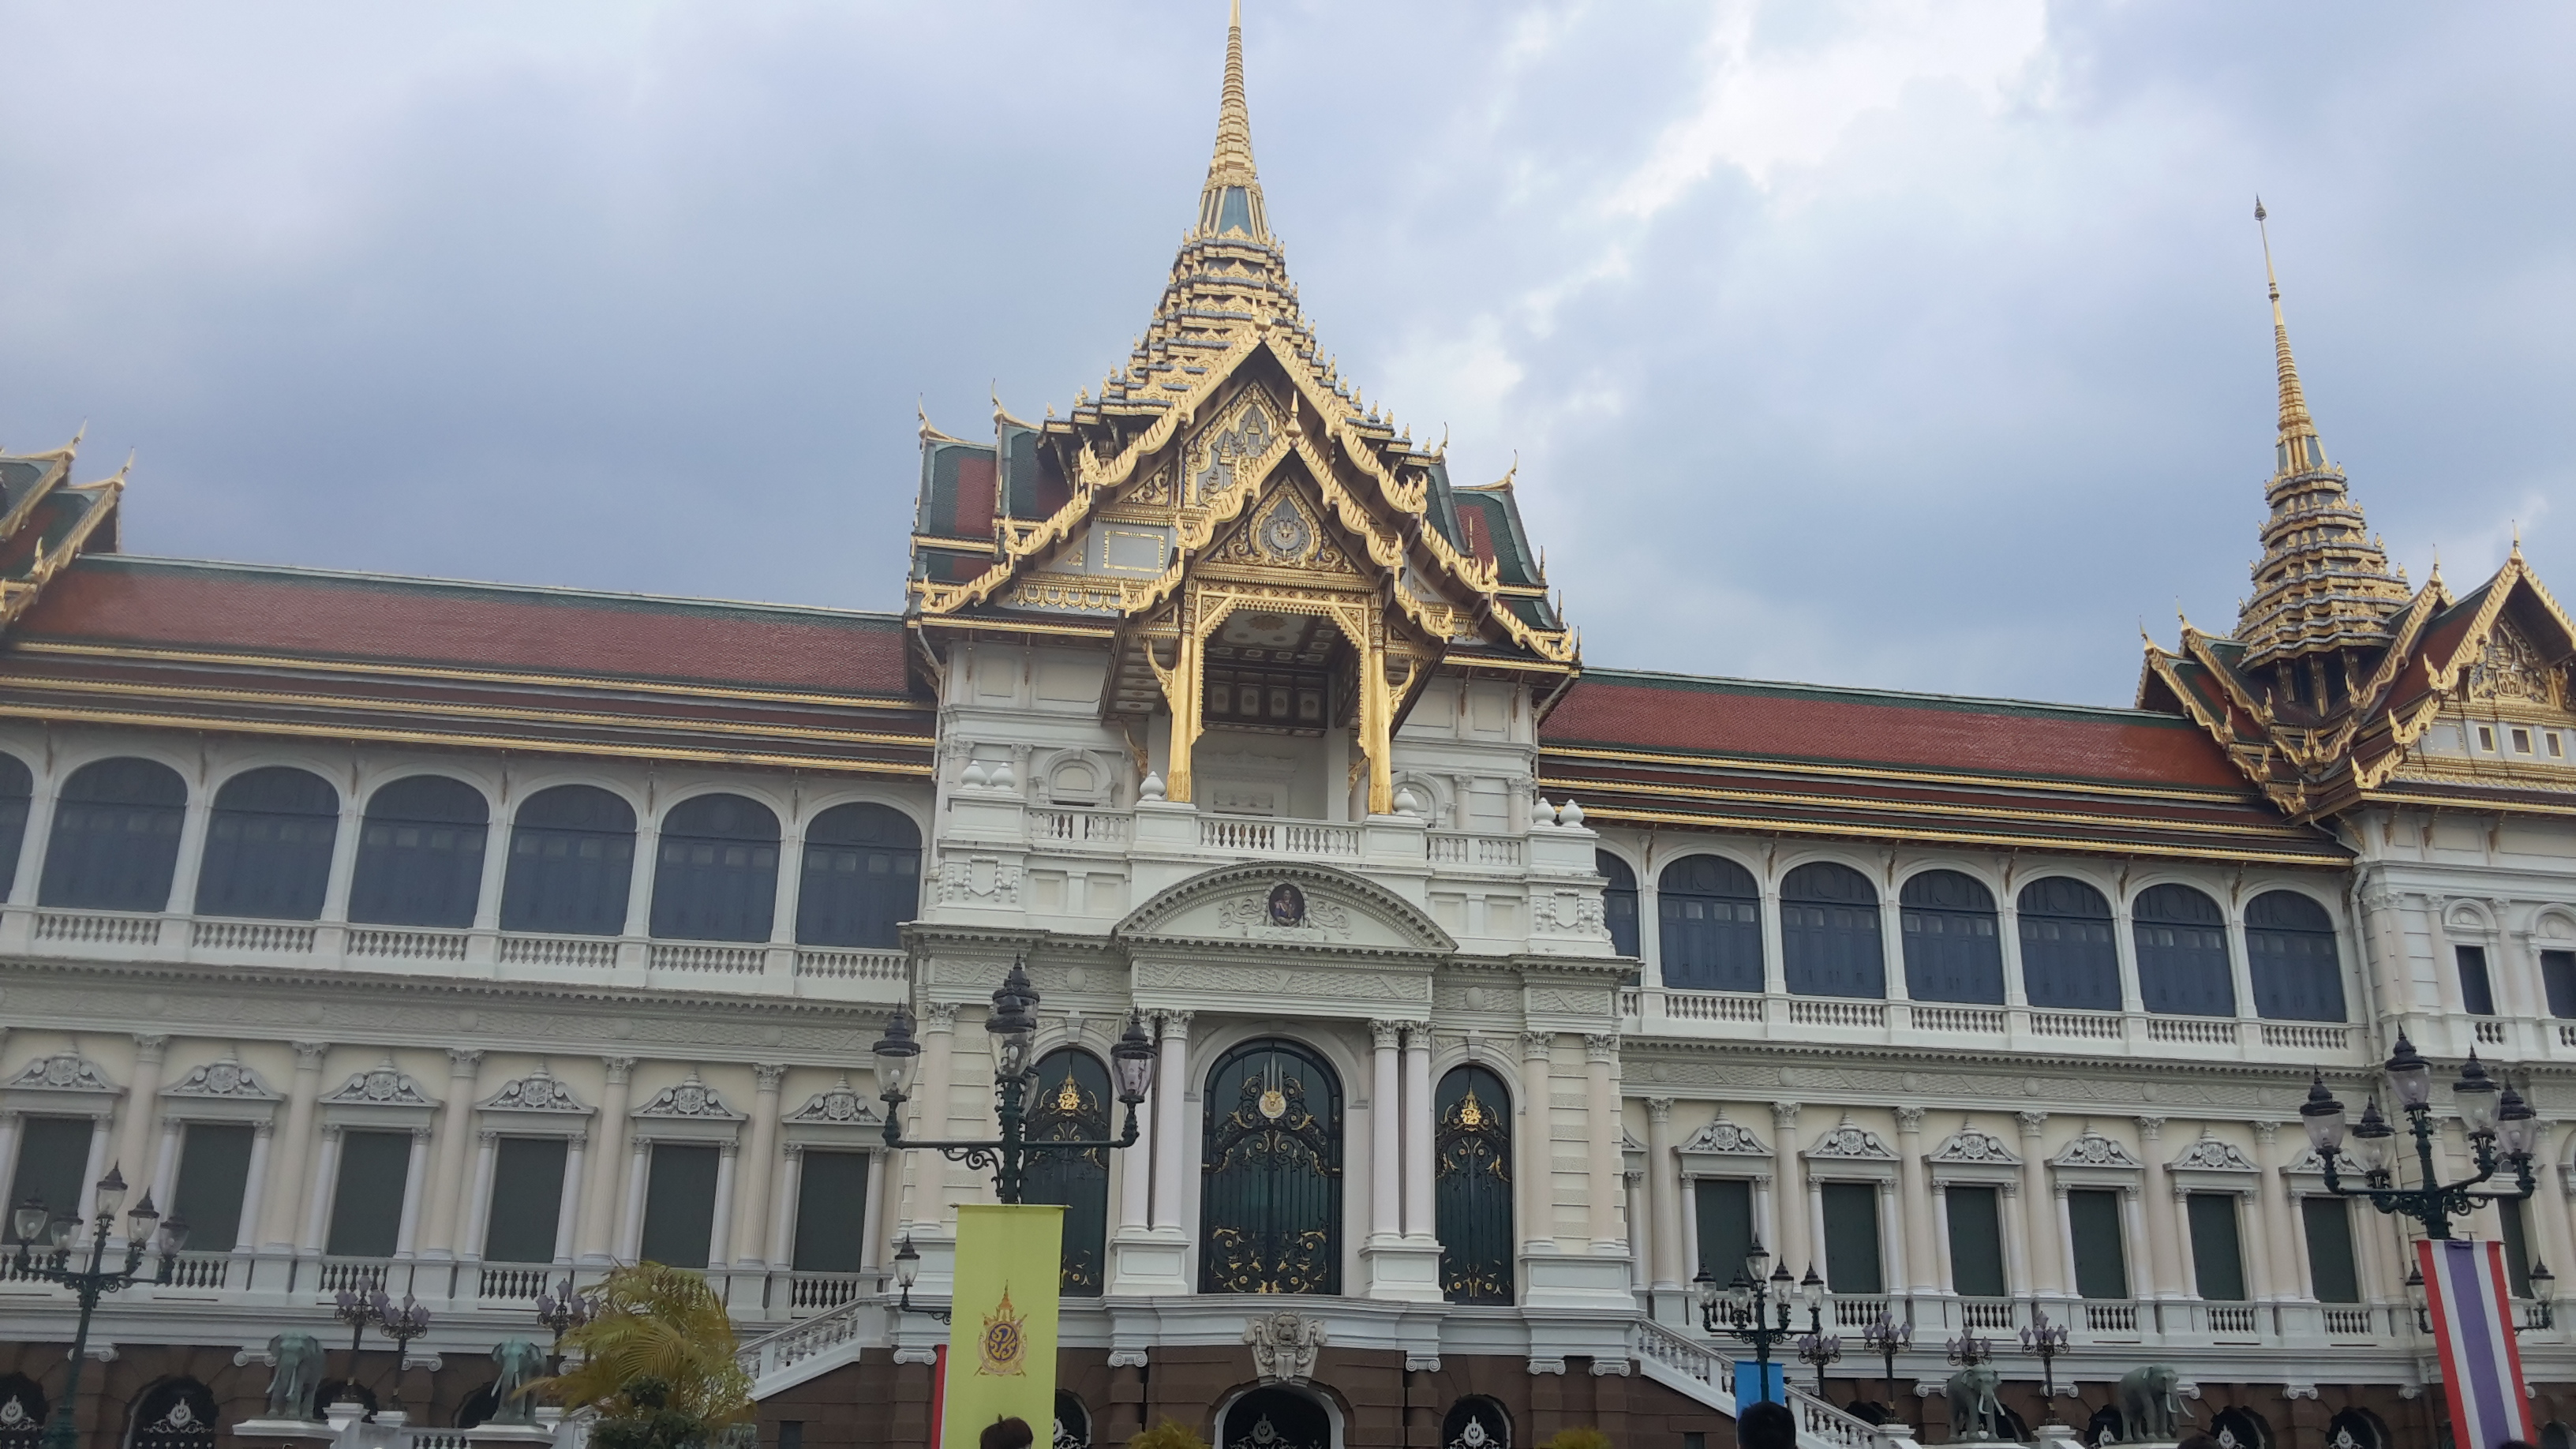 20161002 131458 - Don't miss Grand Palace while your visit to Bangkok